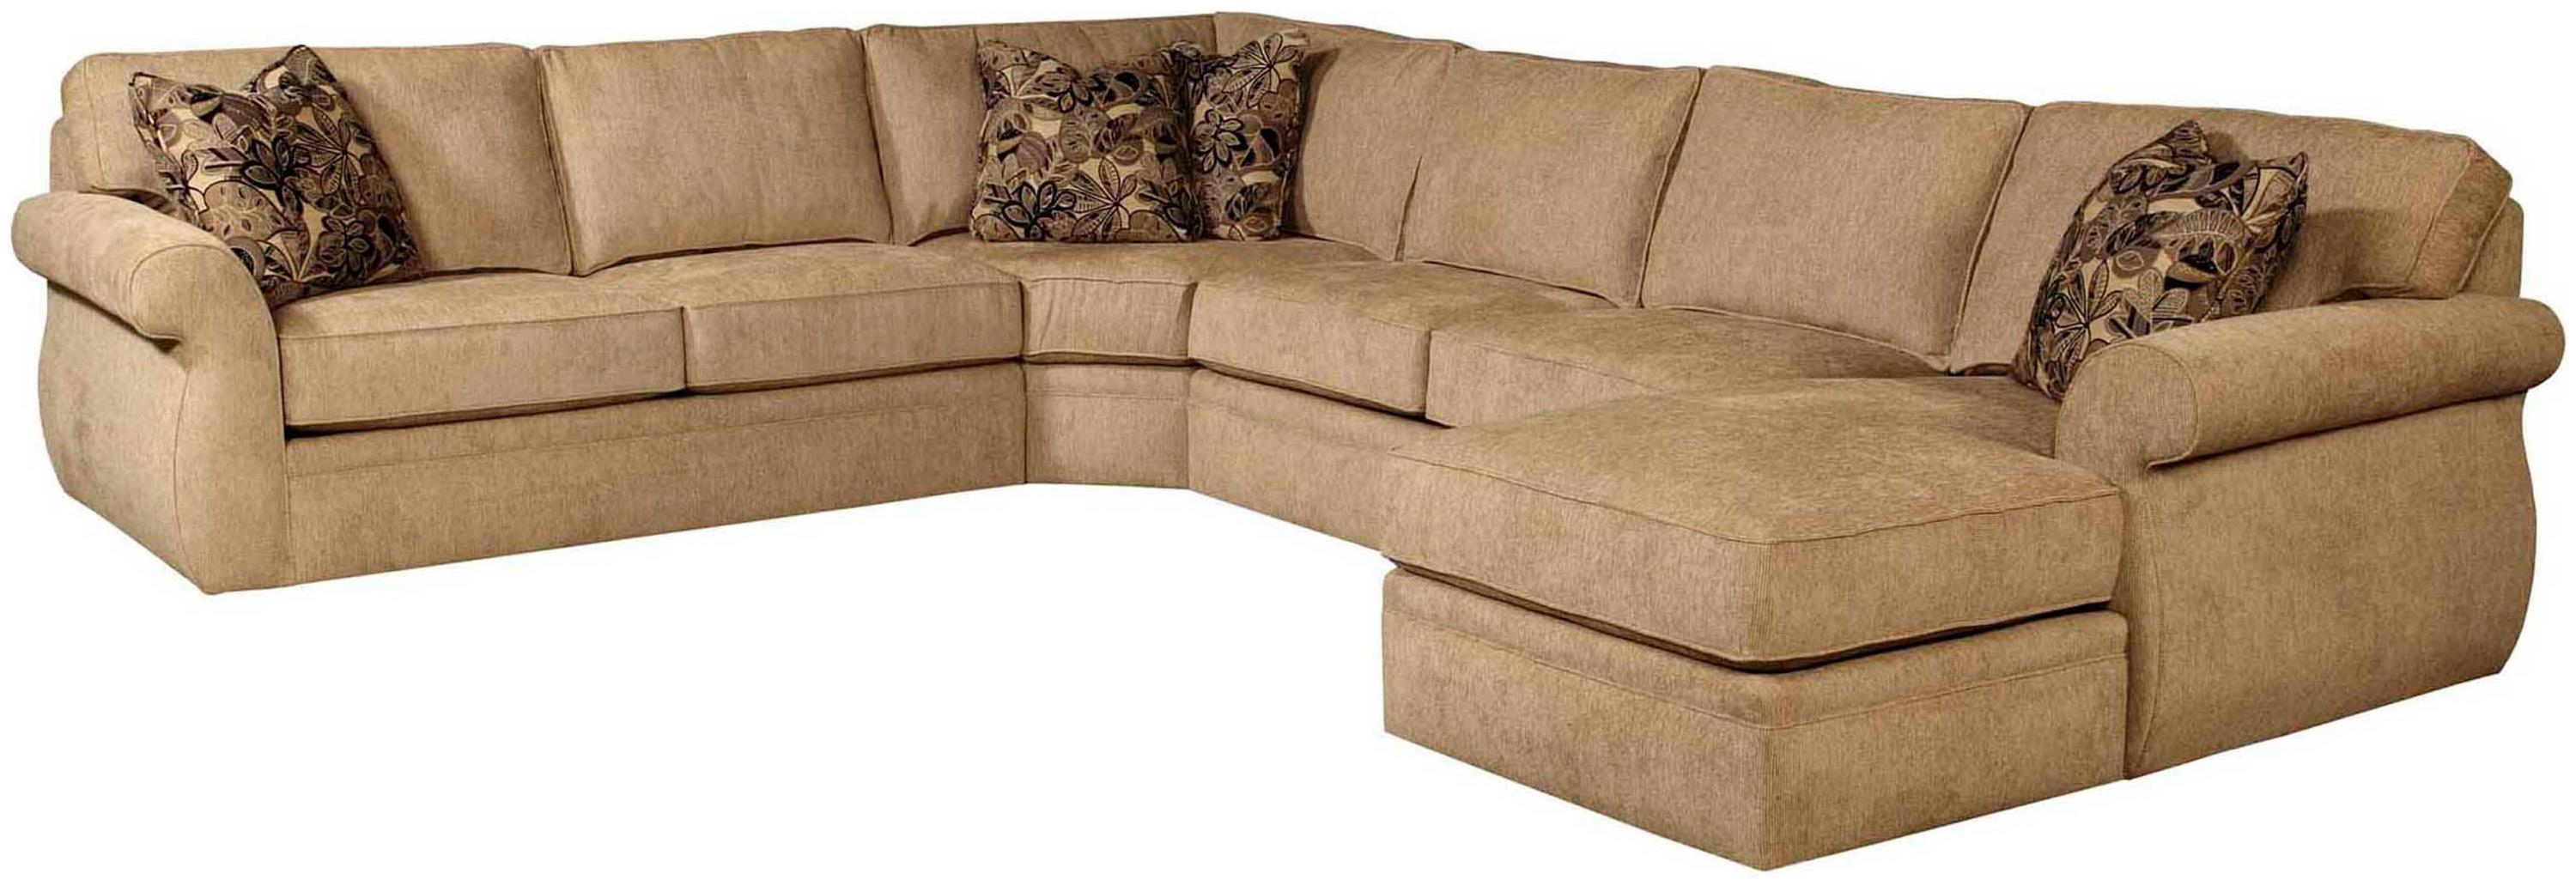 Broyhill furniture veronica chaise sectional with sleeper for Broyhill caitlyn chaise